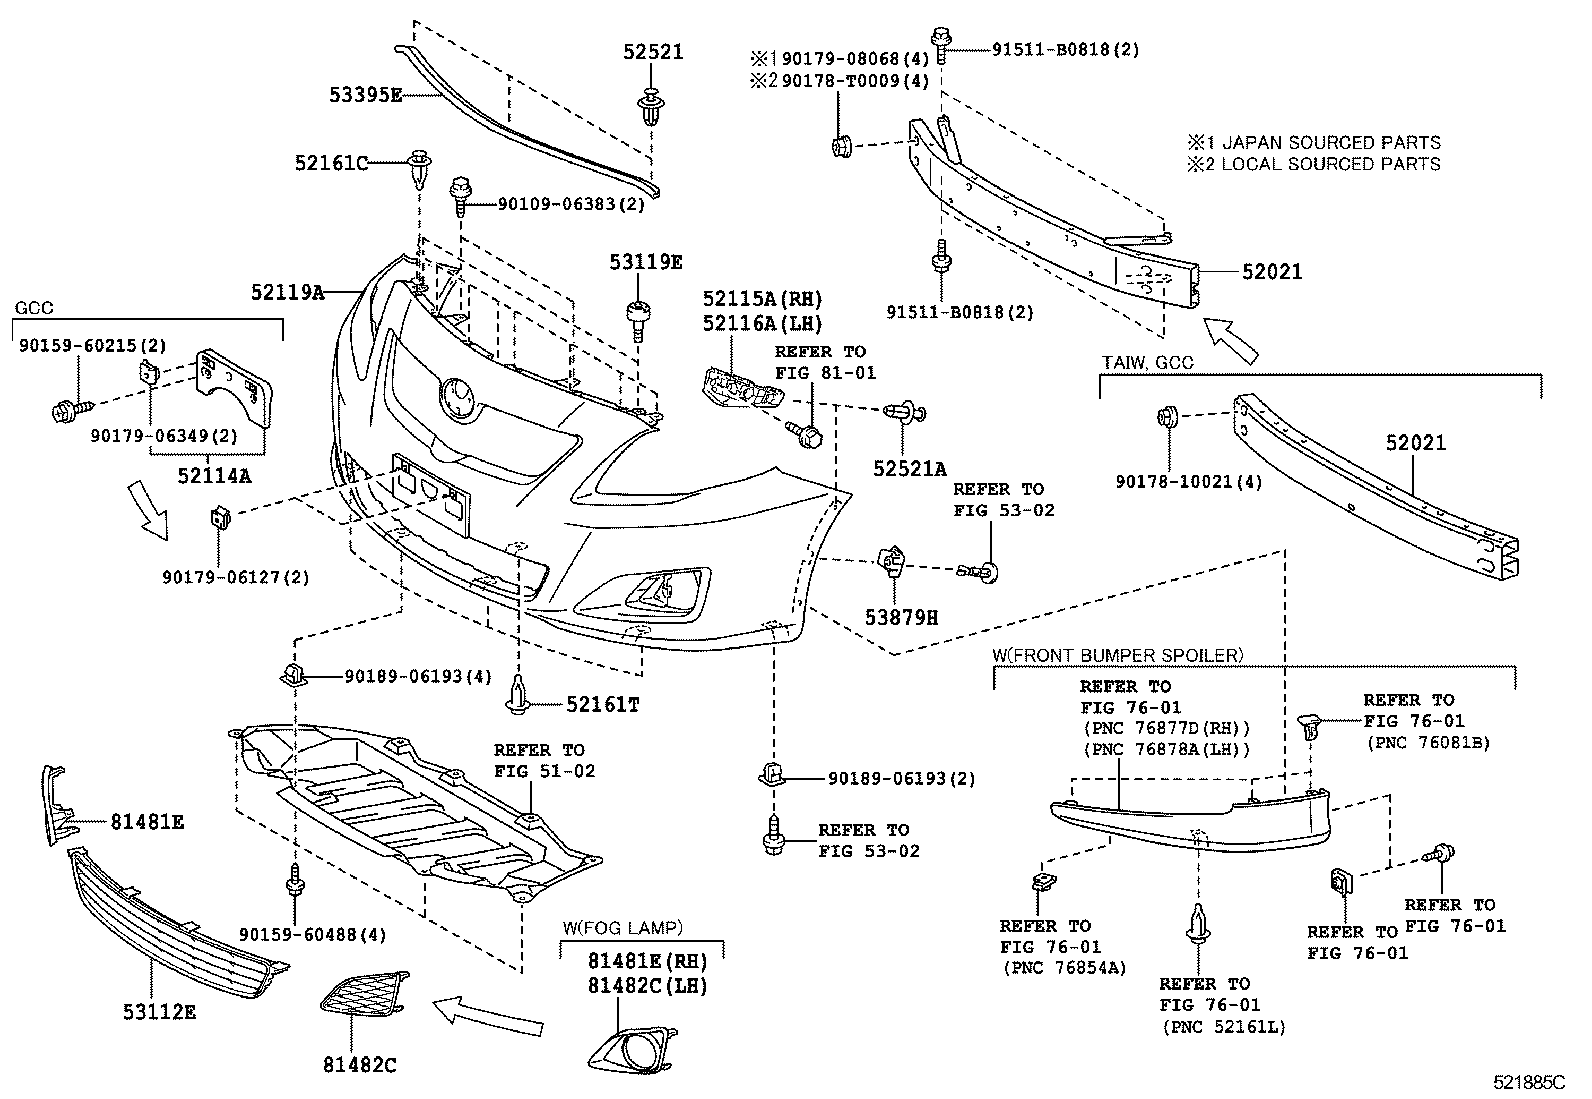 Ford Fiesta Parts Diagram moreover 1986 F150 Proportioning Valve moreover 2002 Honda Accord Dash Cluster Schematic in addition Cars Engine Parts moreover 2011 Toyota Corolla Accessories 2011 Corolla Car Parts. on 2002 cadillac parts catalog html